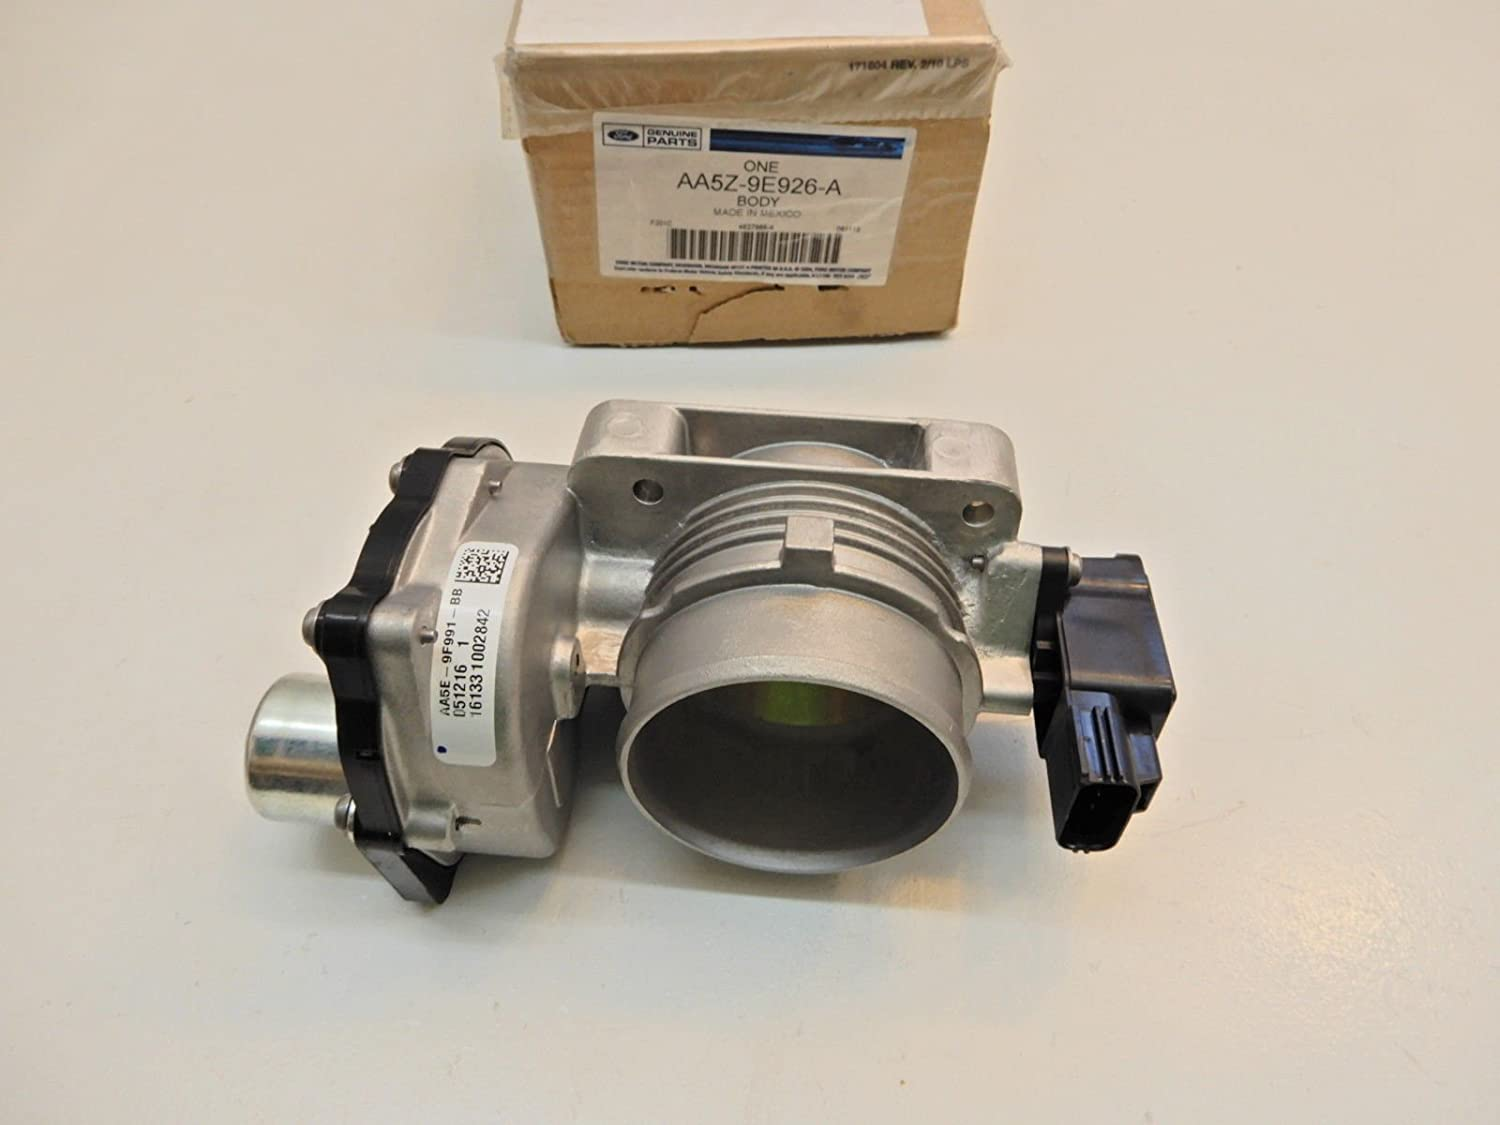 Ford AA5Z-9E926-A, Fuel Injection Throttle Body